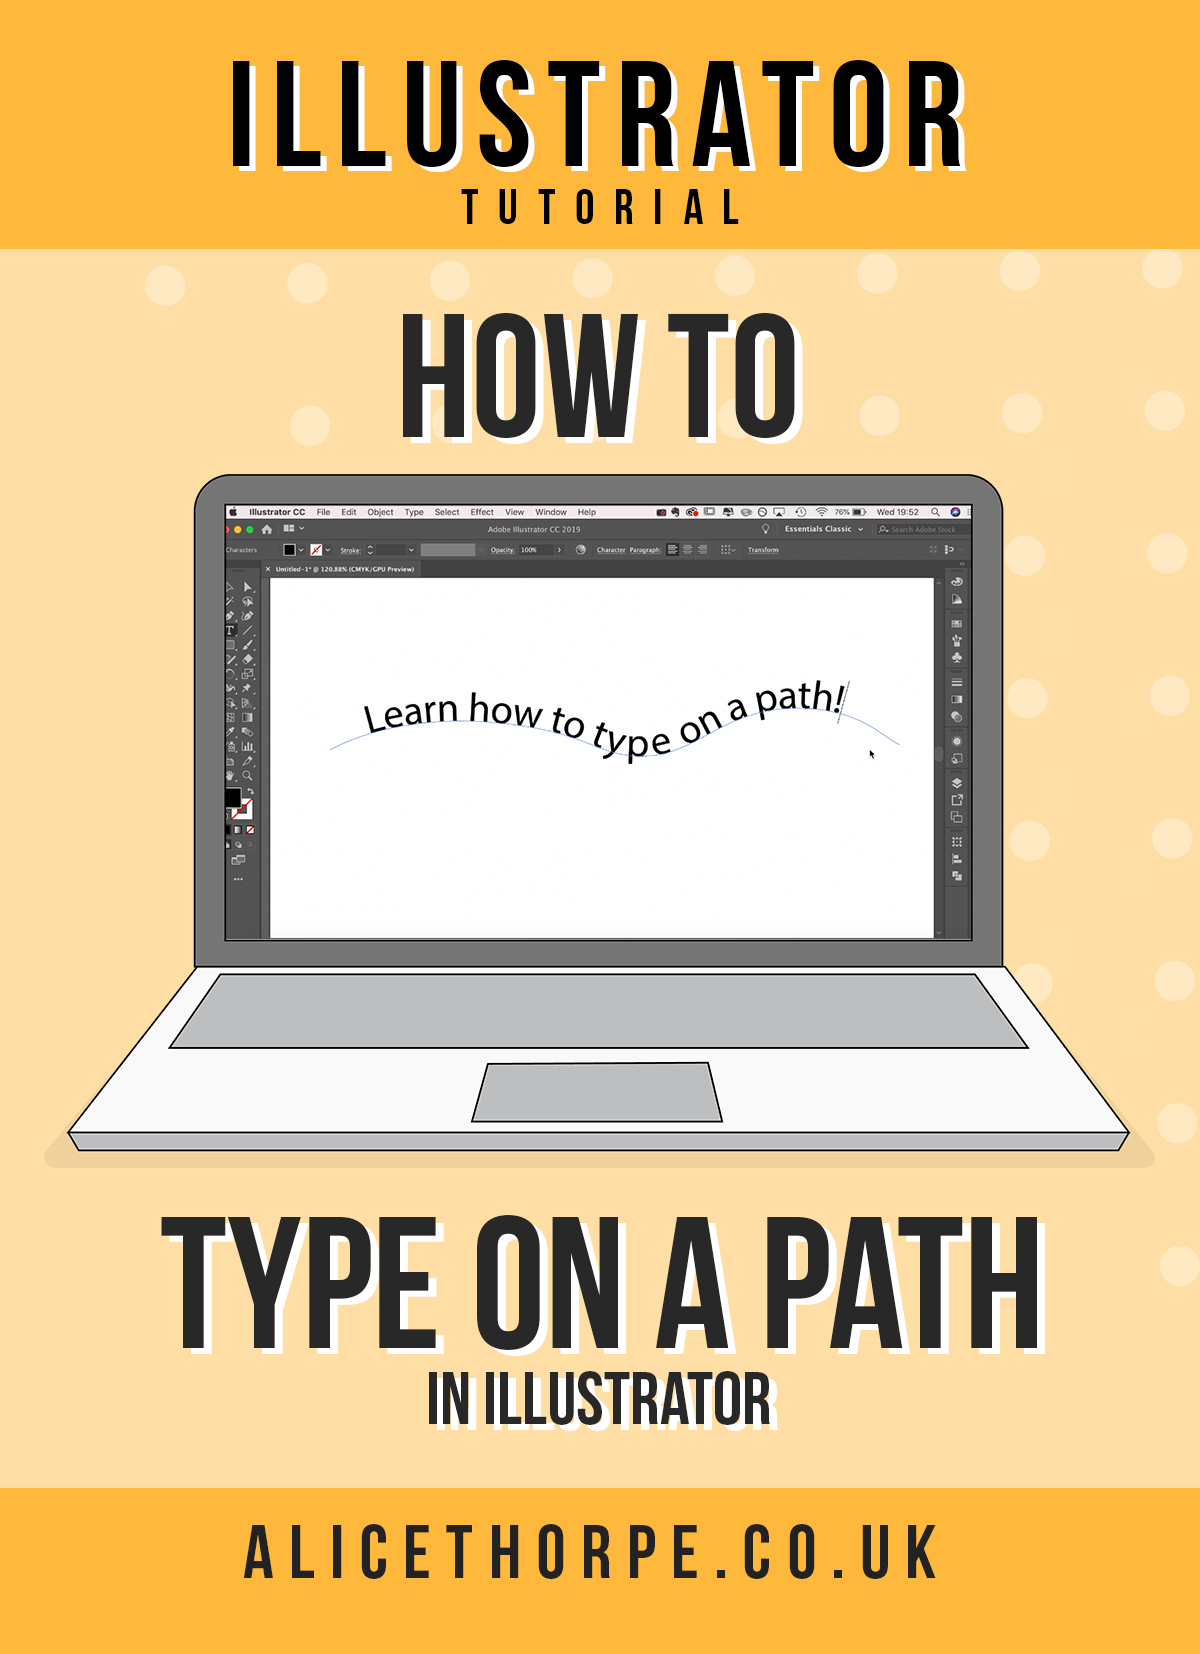 How To Type Perfectly On a Path | Adobe Illustrator Tutorial